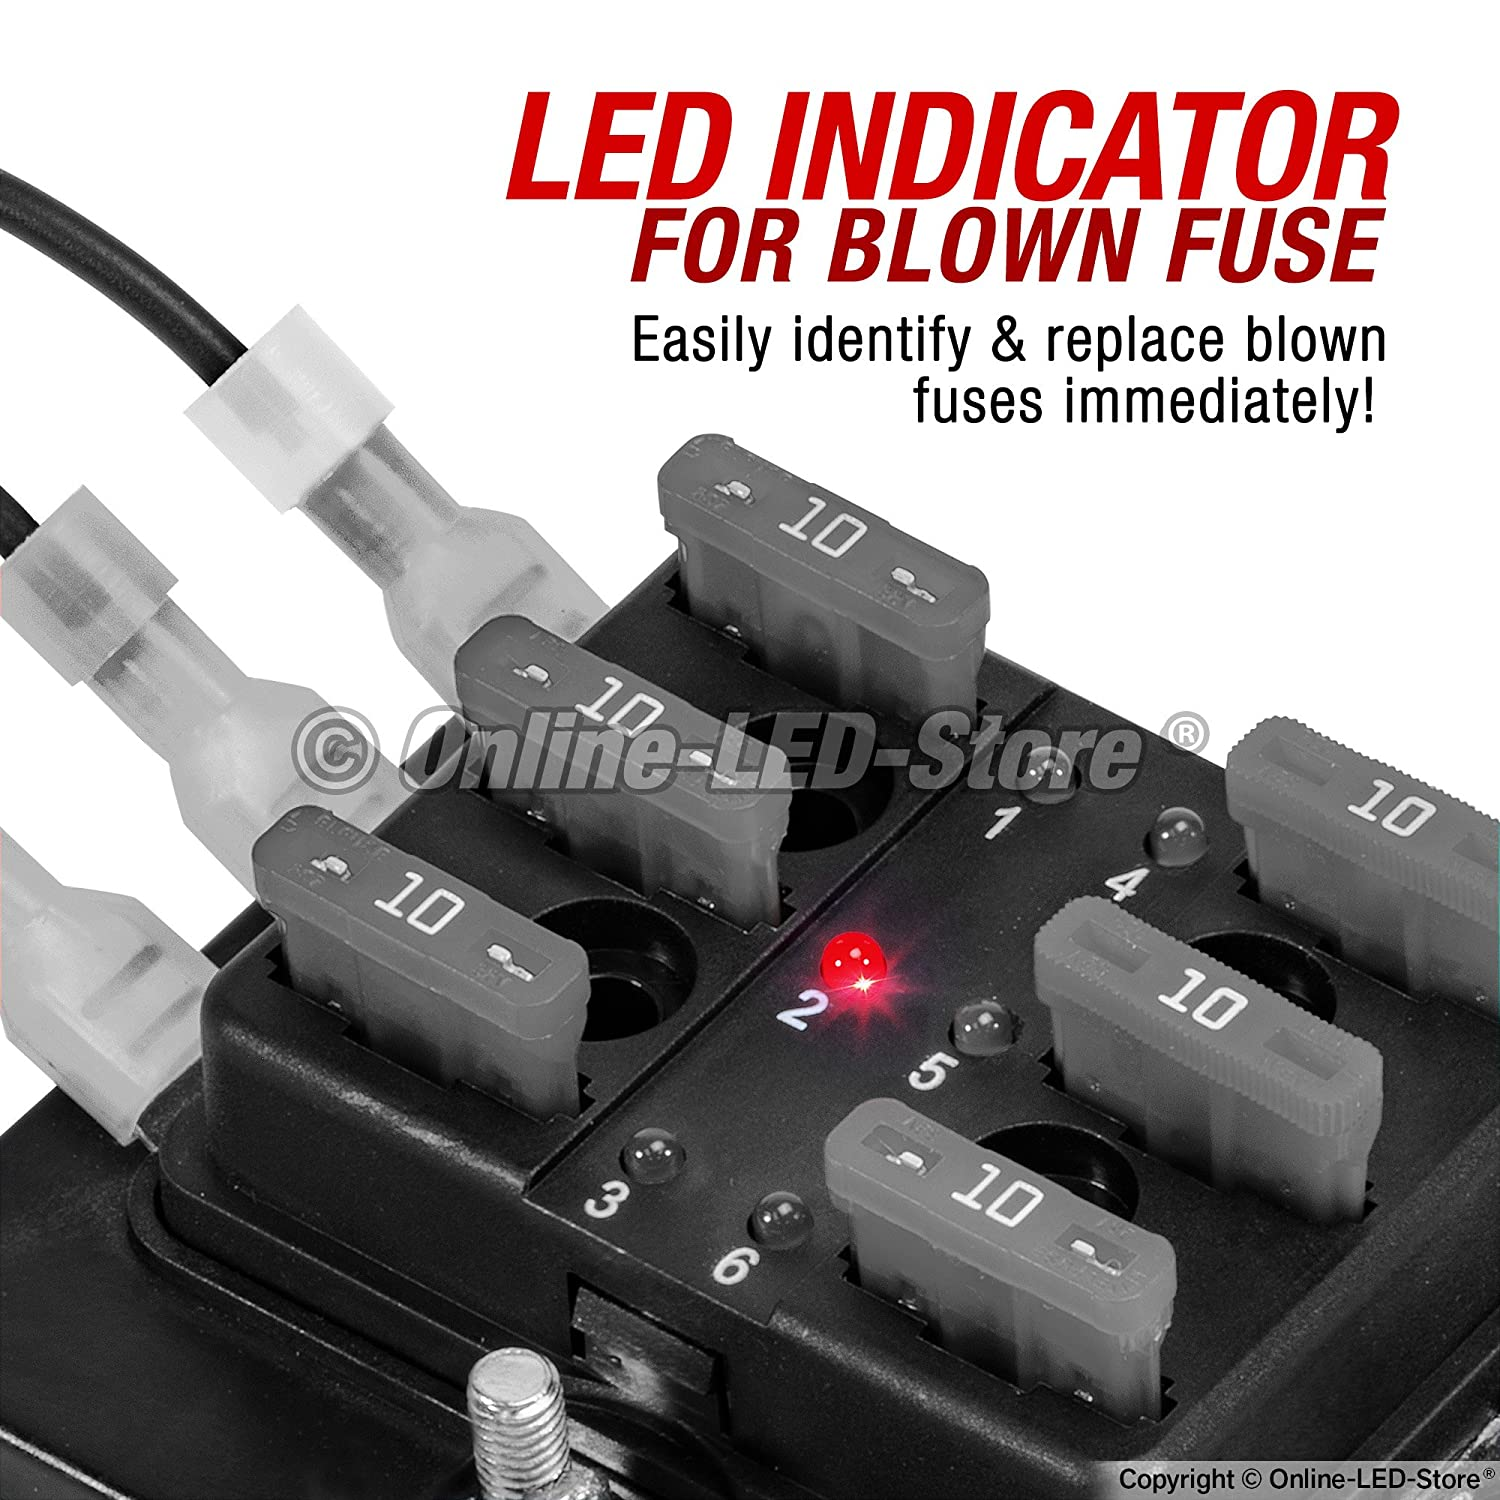 91UtBRj2meL._SL1500_ amazon com ols 6 way blade fuse box [led indicator for blown fuse blown fuse in breaker box at aneh.co